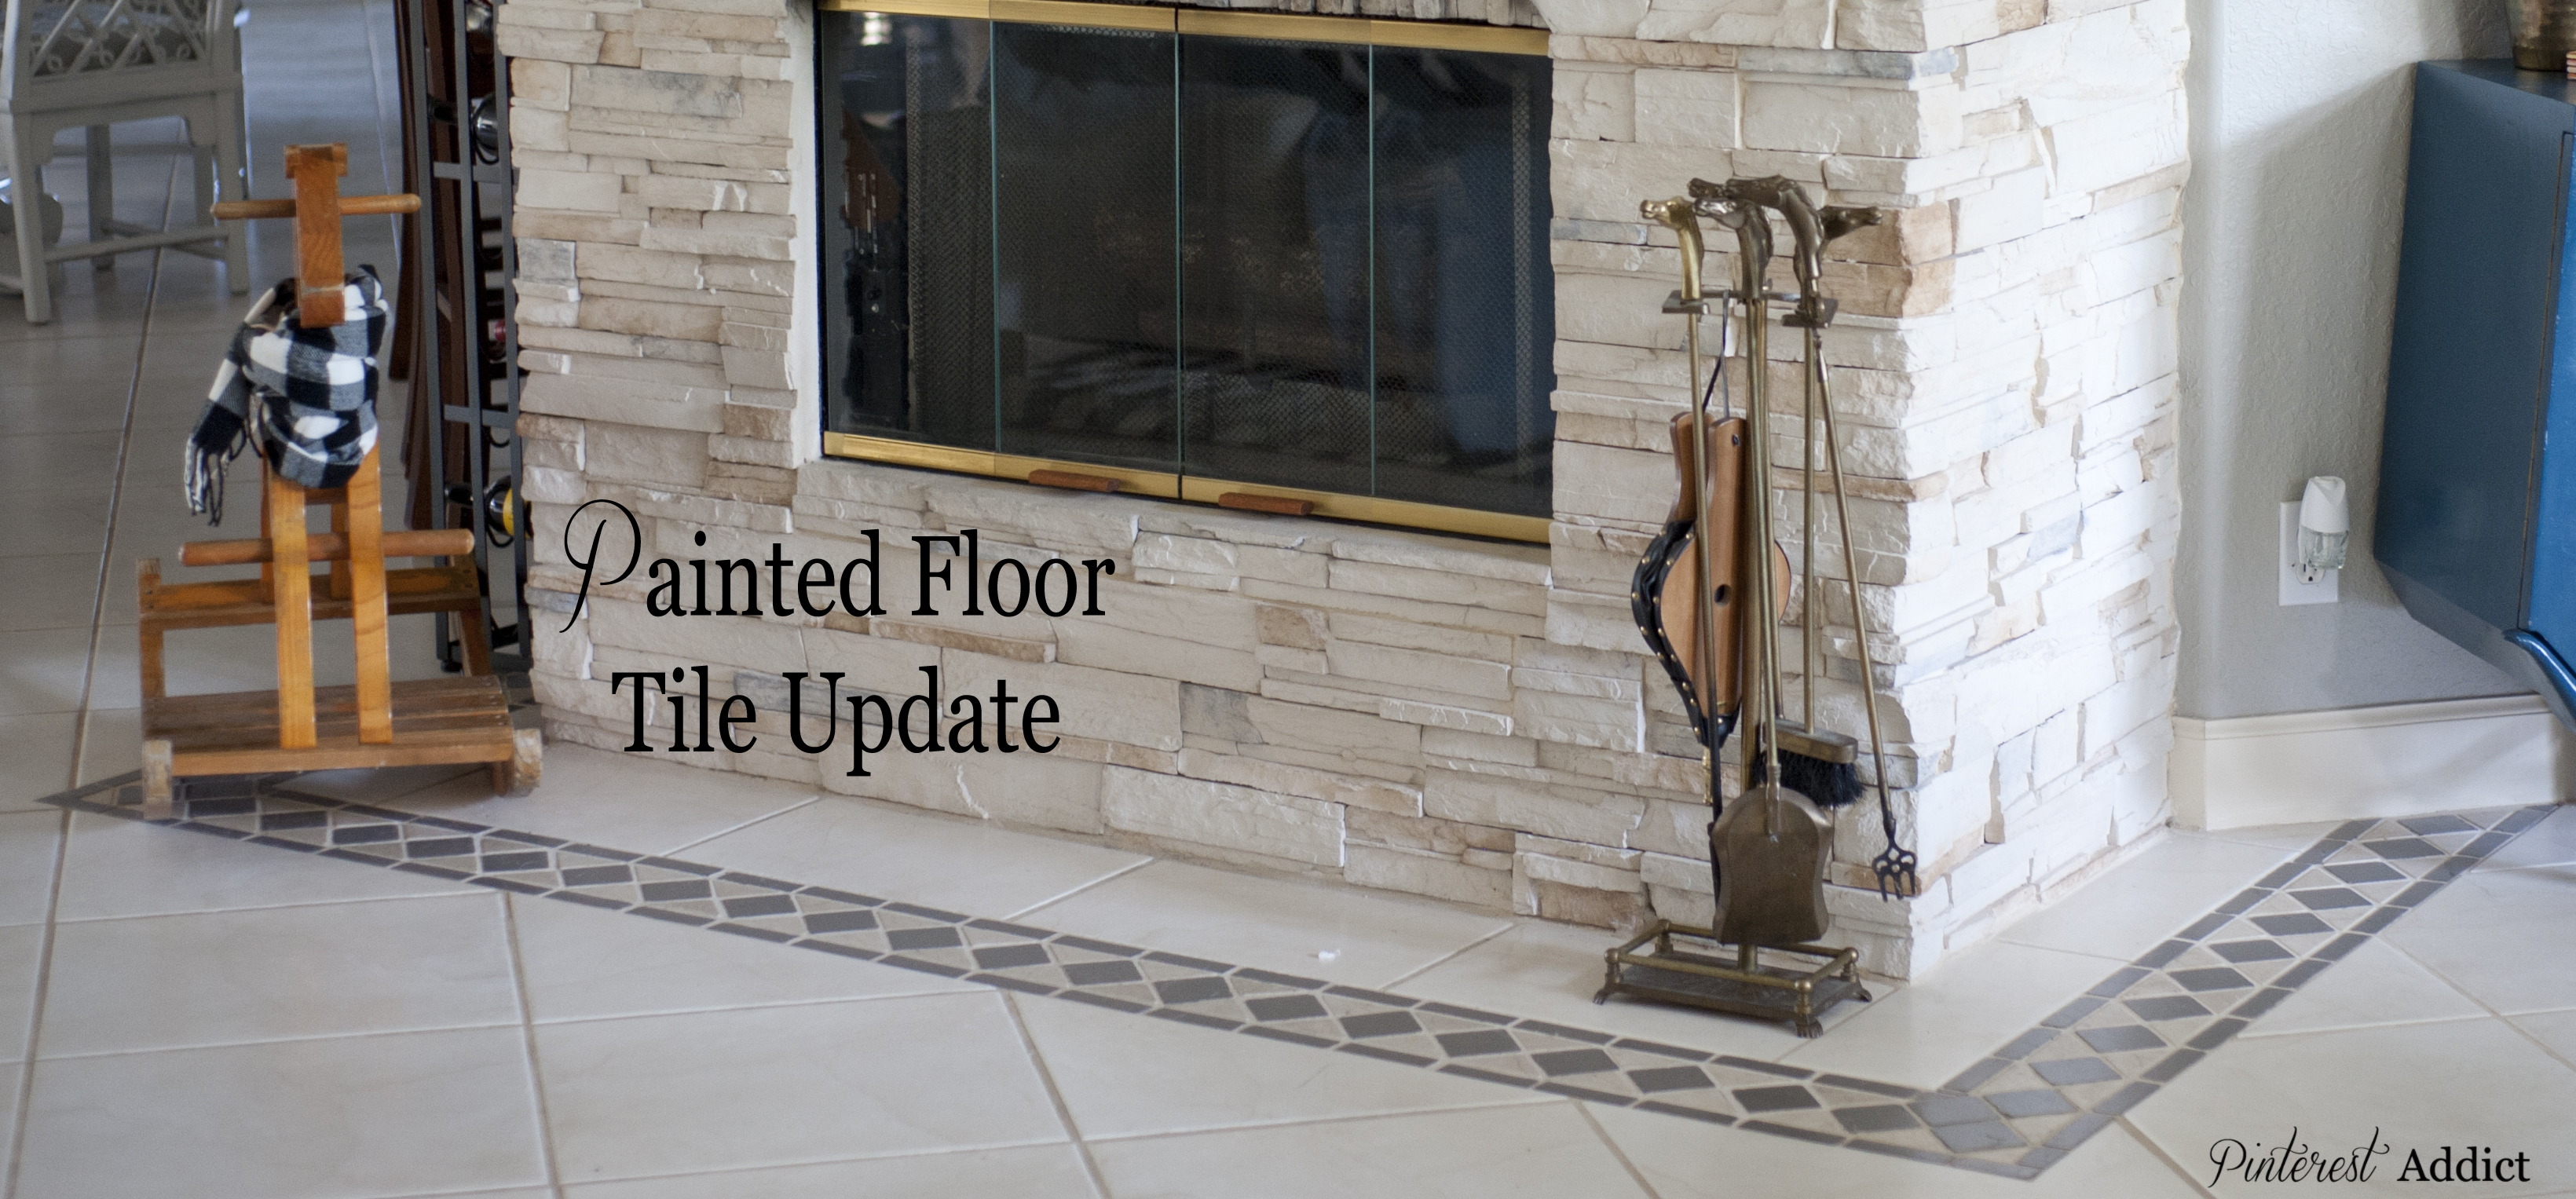 Painted Floor Tile Update Pinterest Addict